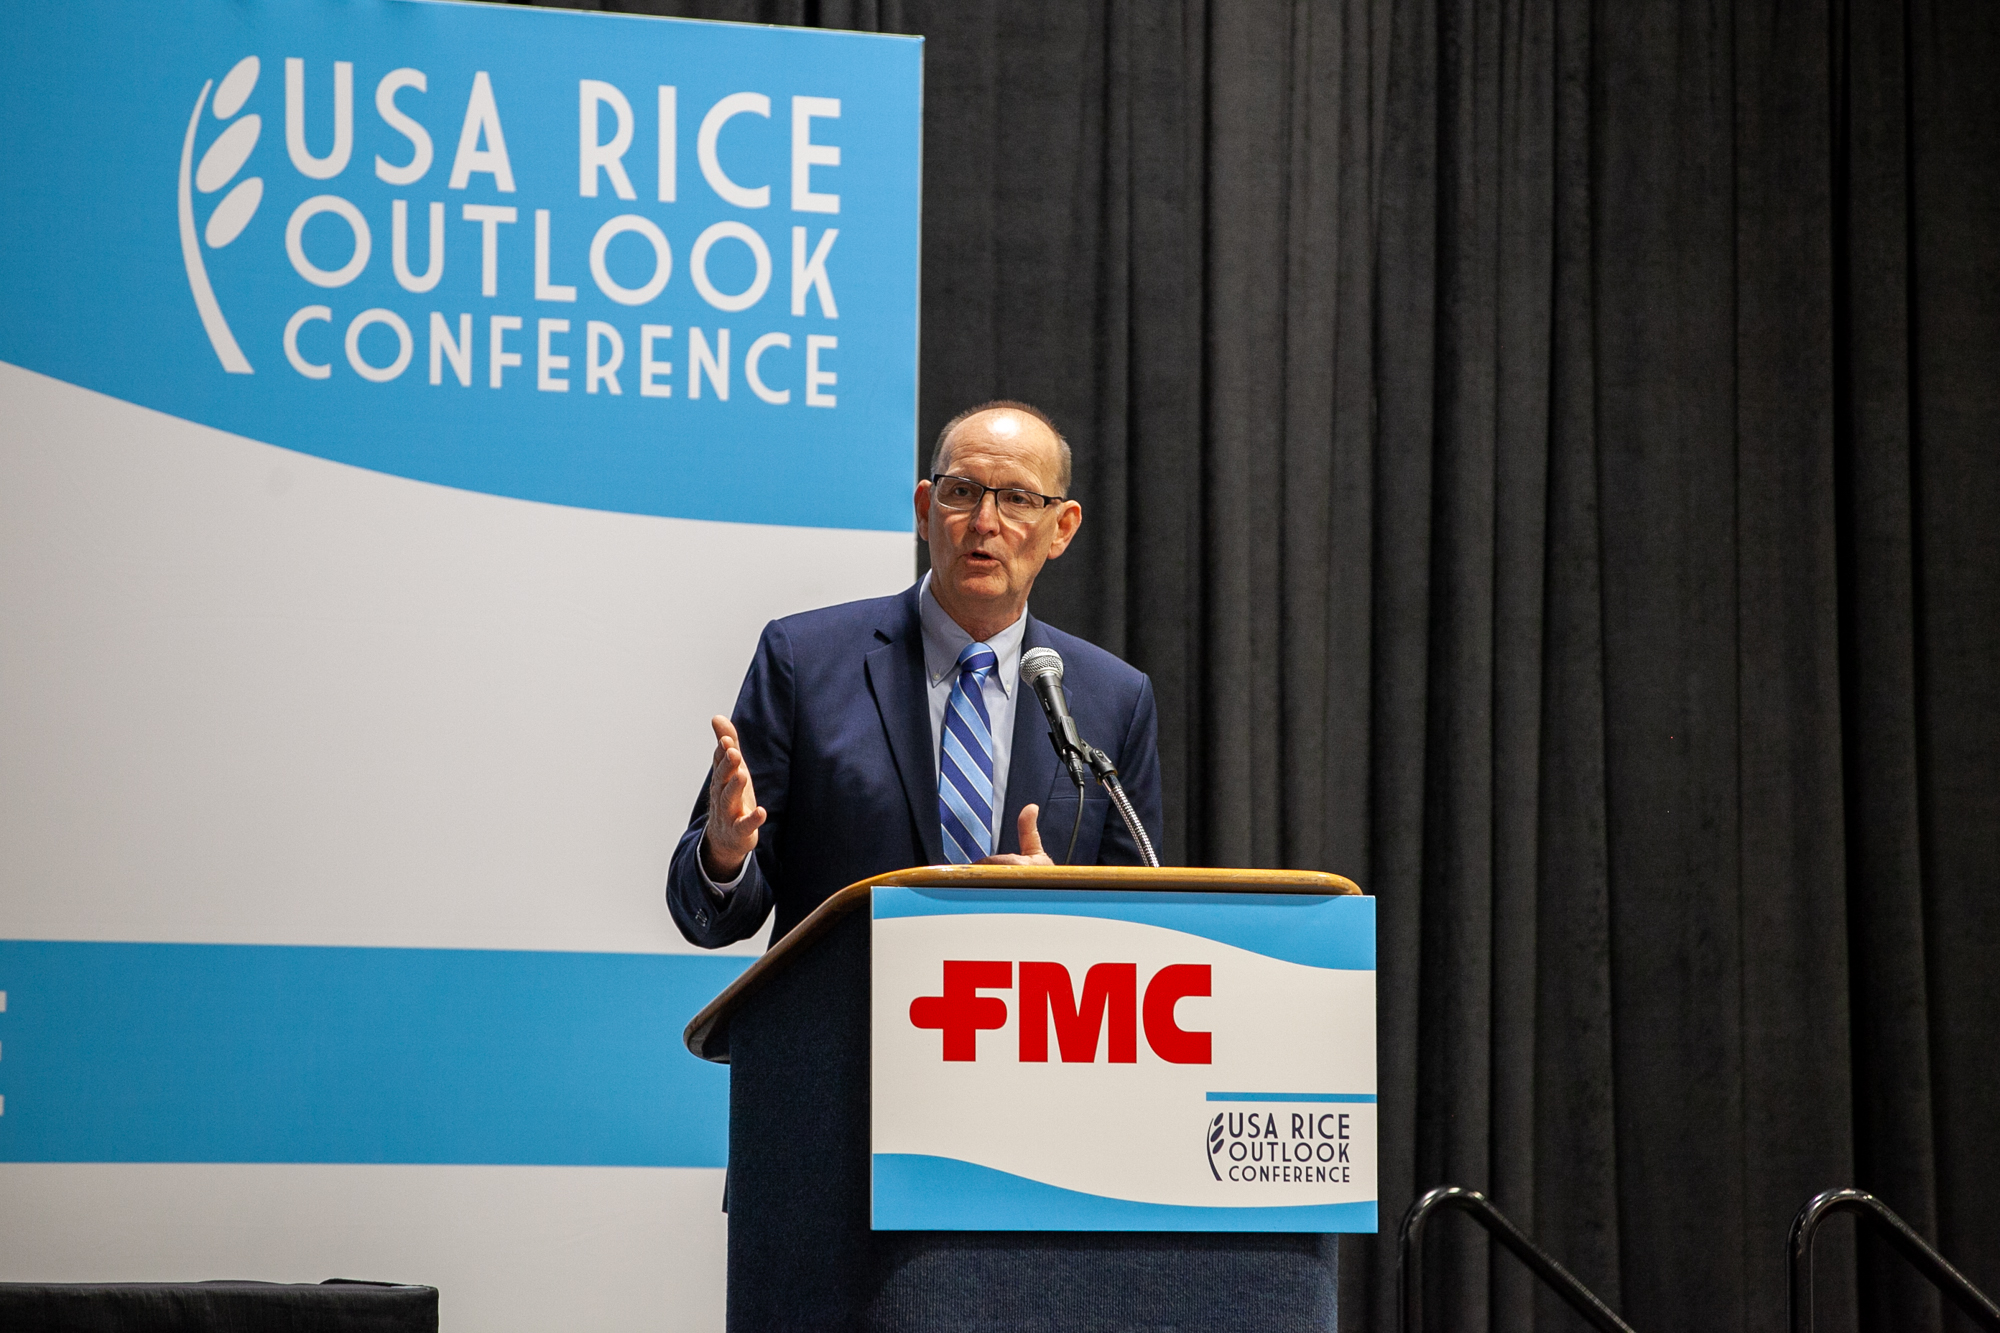 USDA Under Secretary Ibach took the stage to talk imports and exports